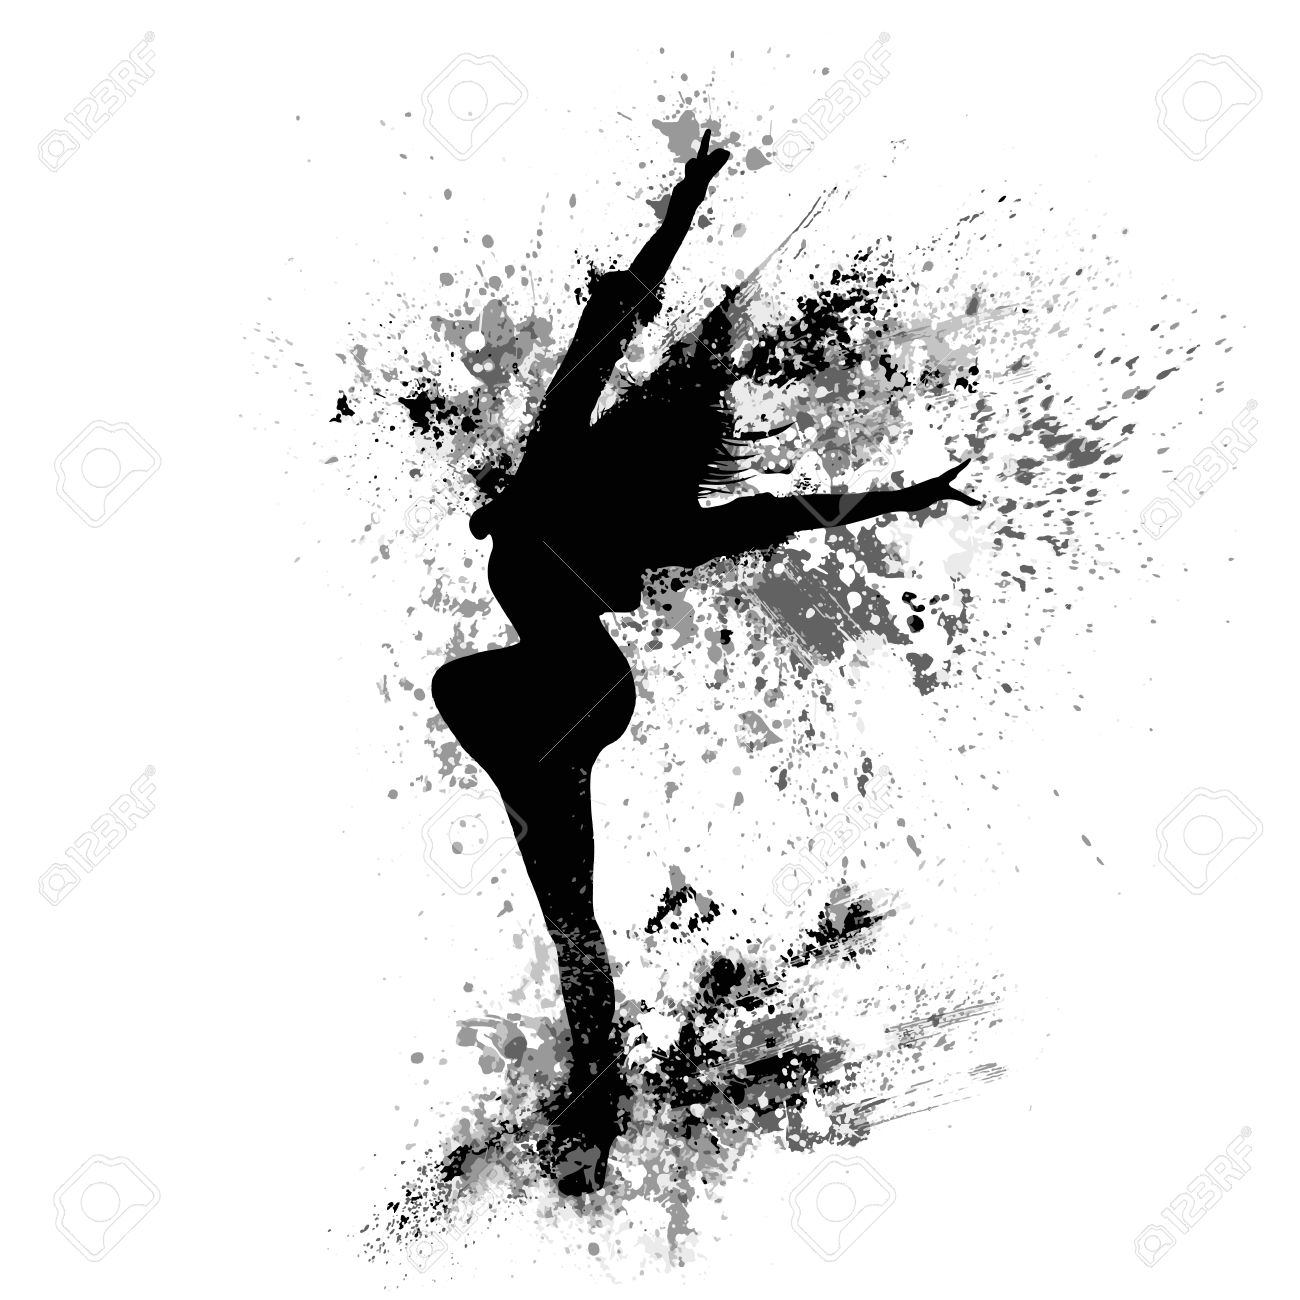 Dancing Girl Black Splash Paint Silhouette Isolated White Stock Vector